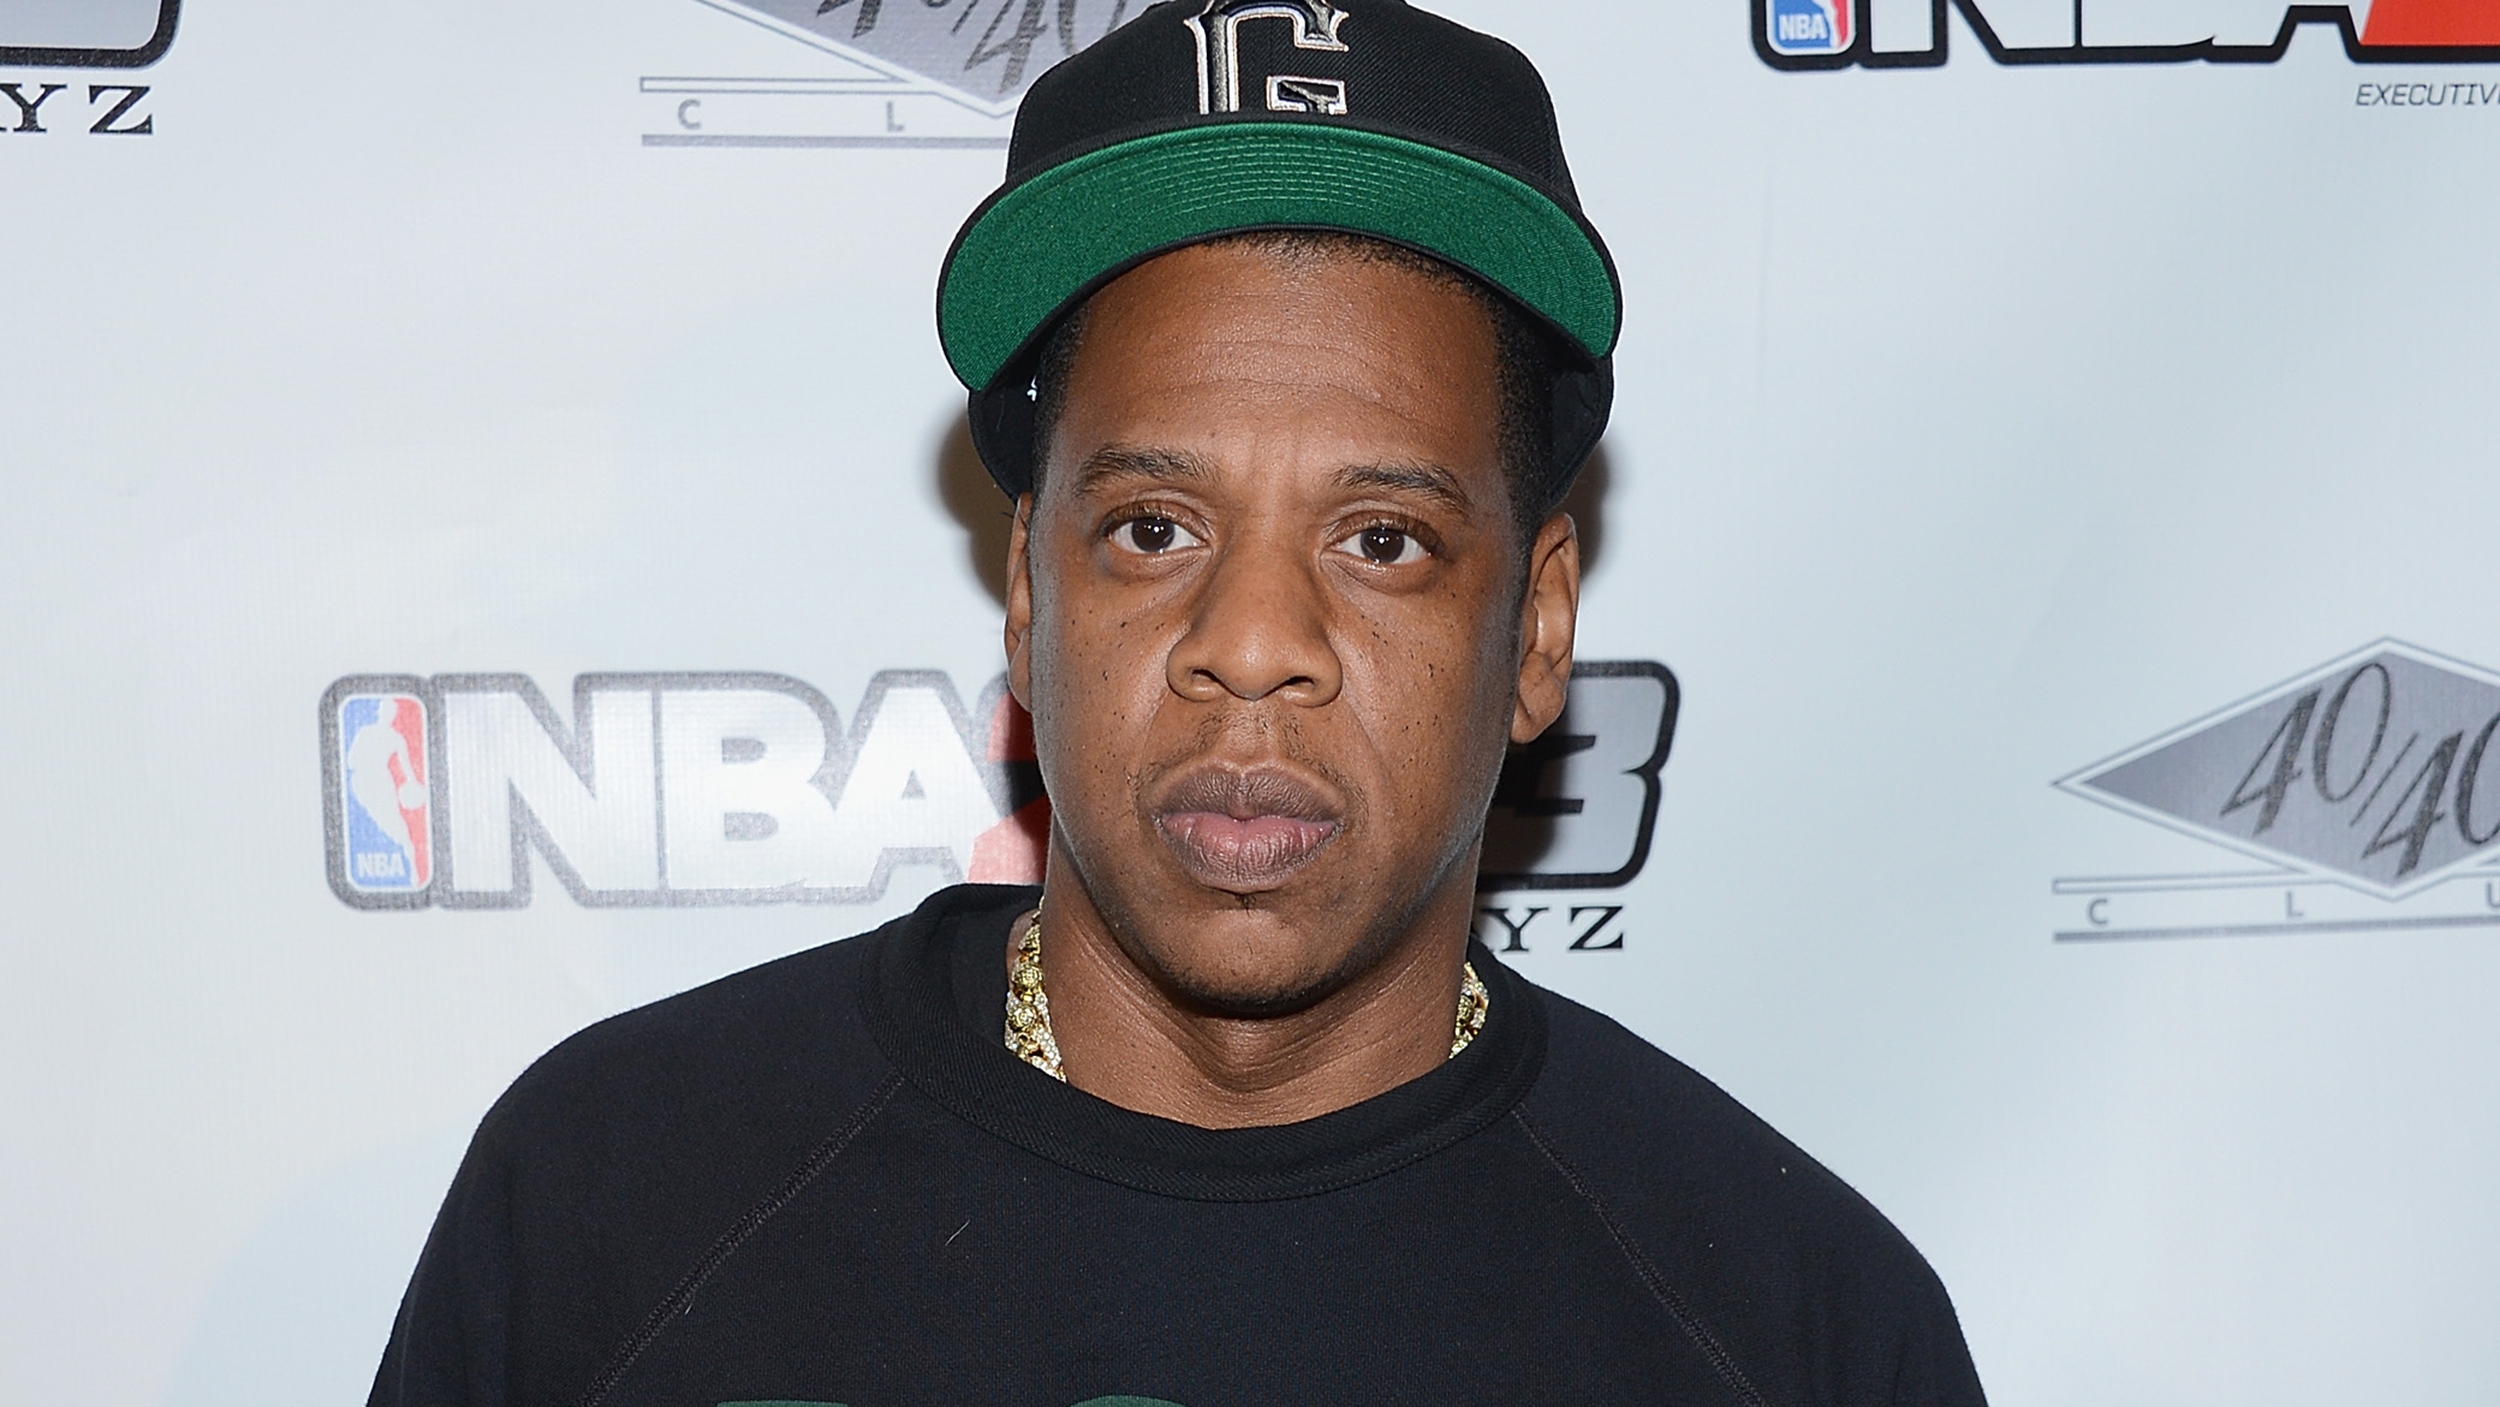 Jay Z Toddler Is Perfect Match For Rap Mogul